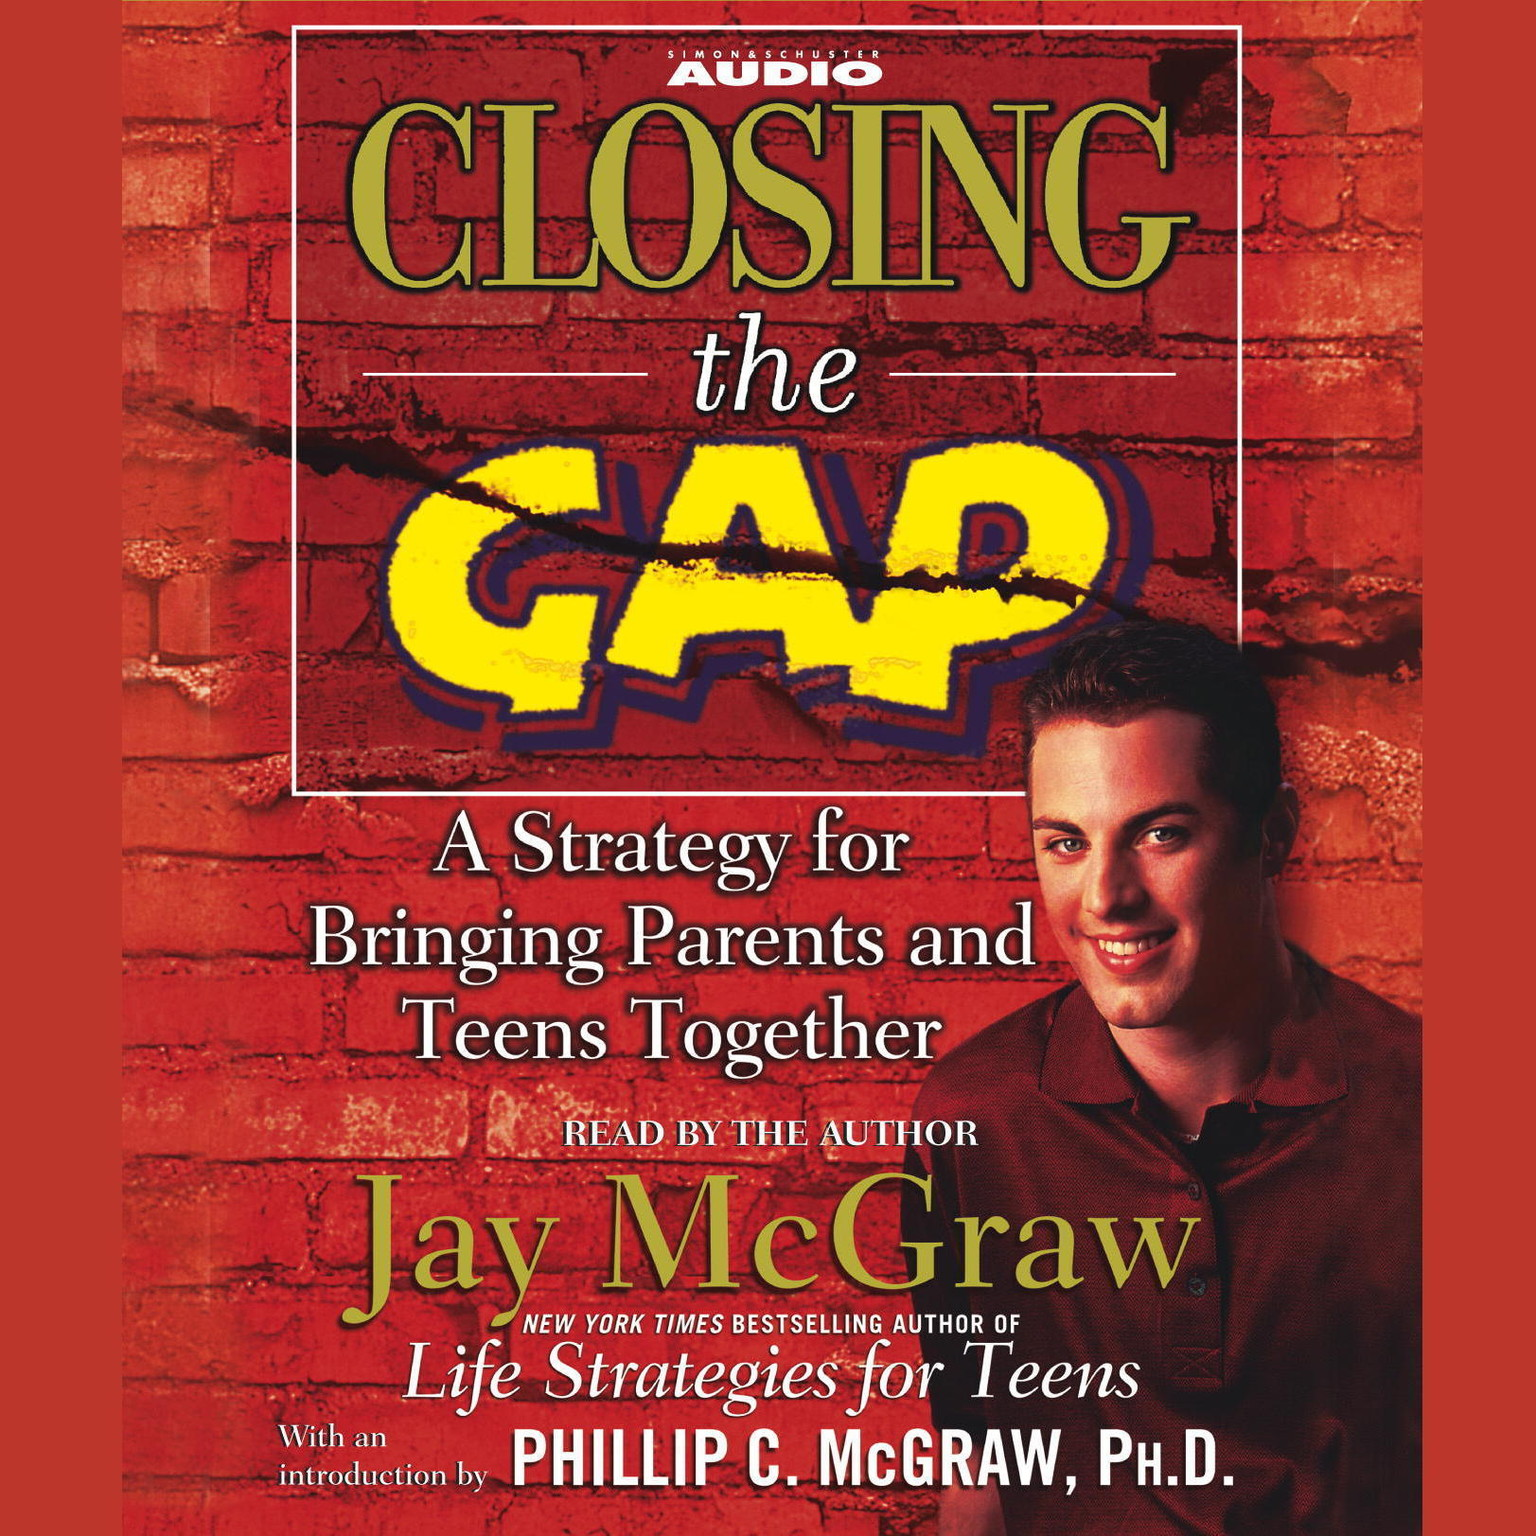 Printable Closing the Gap: A Strategy for Bringing Parents and Teens Together Audiobook Cover Art